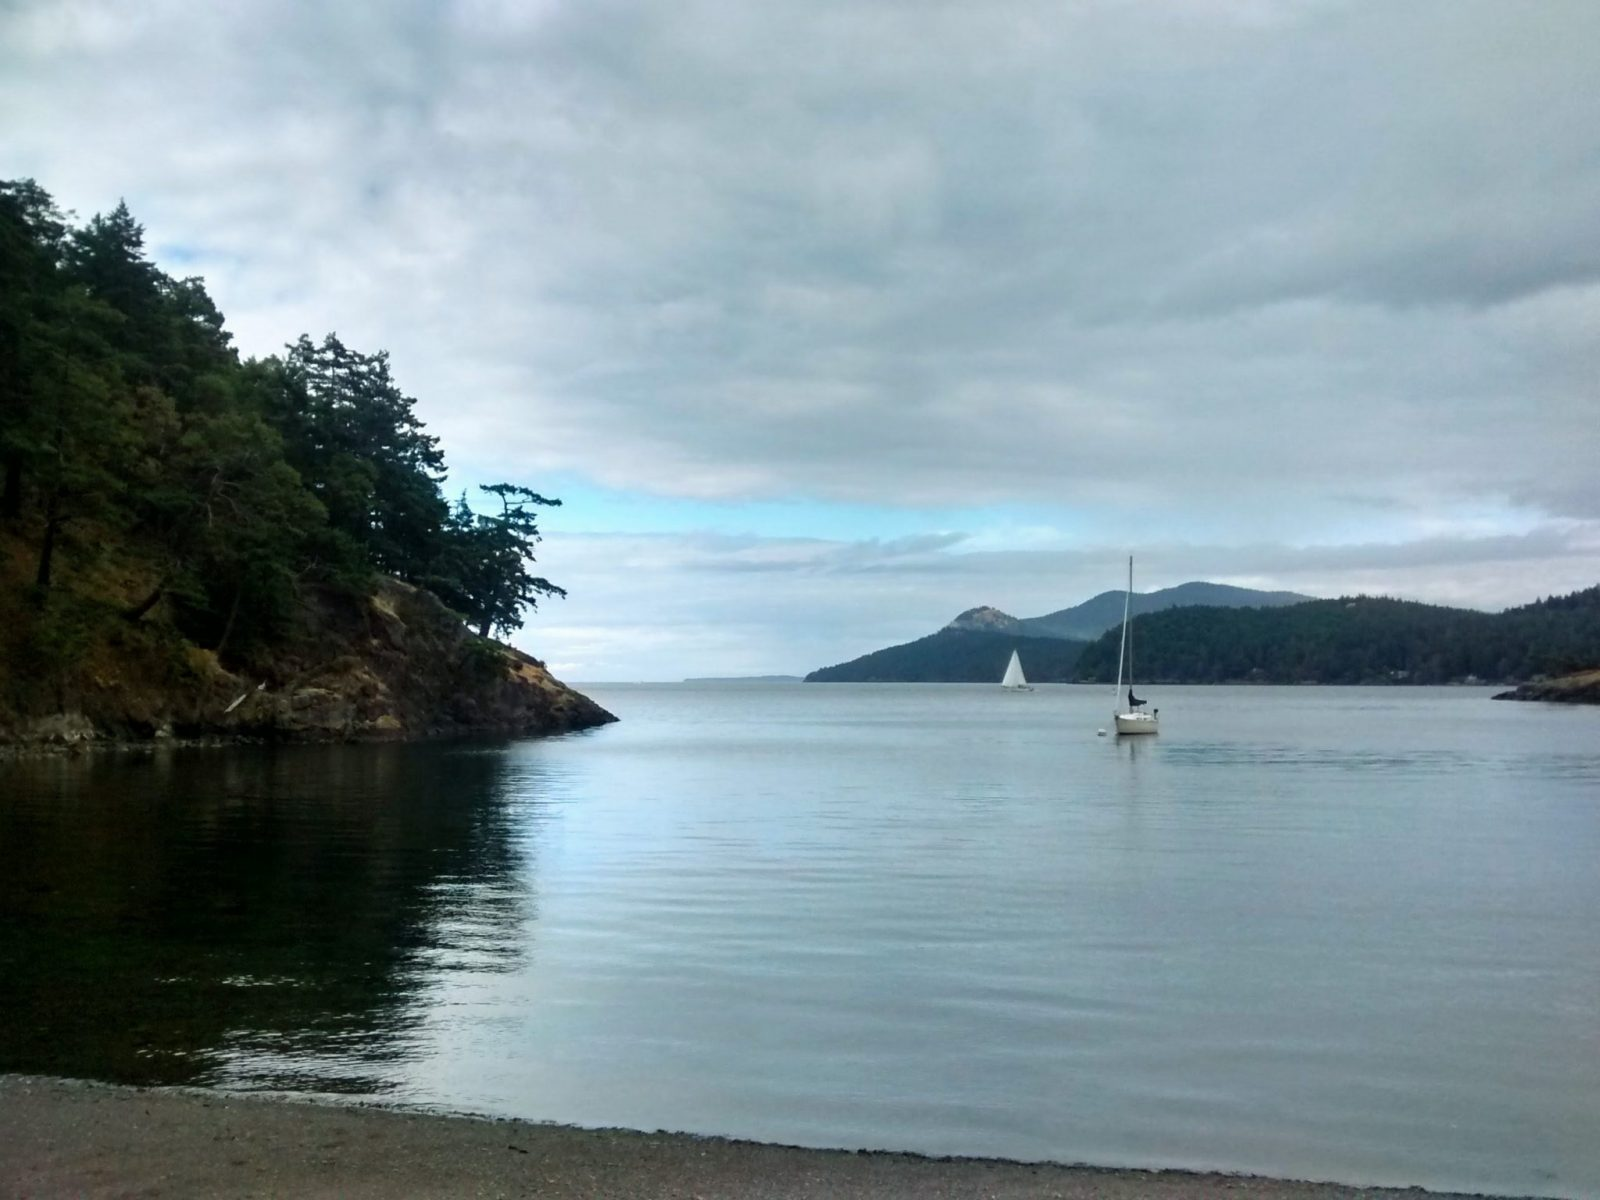 A sailboat at anchor in a small bay. The bay is surrounded by forested hillsides and a gravel beach on a cloudy day